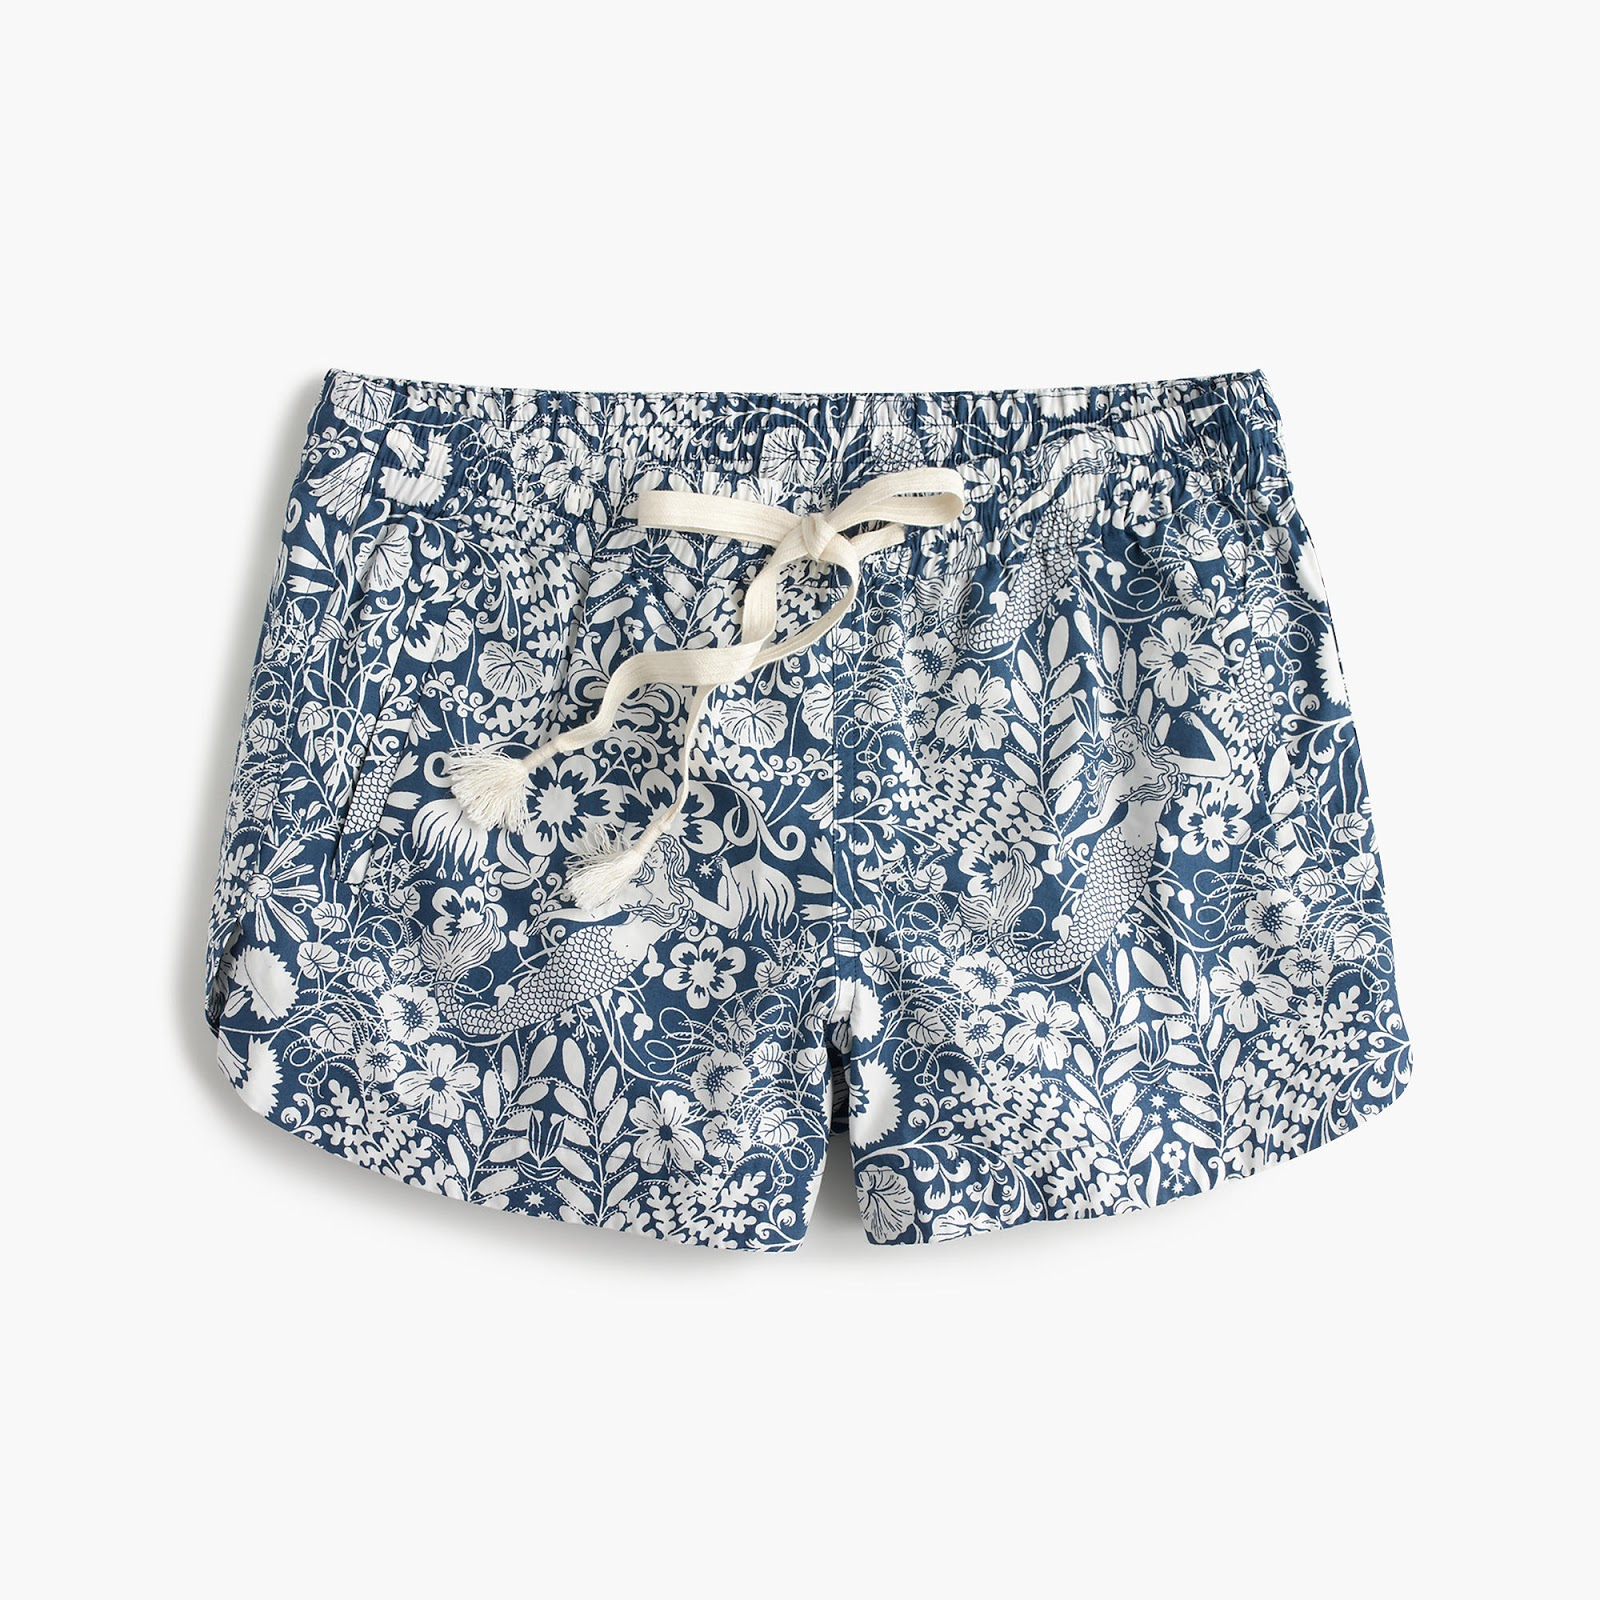 J Crew mermaid shorts